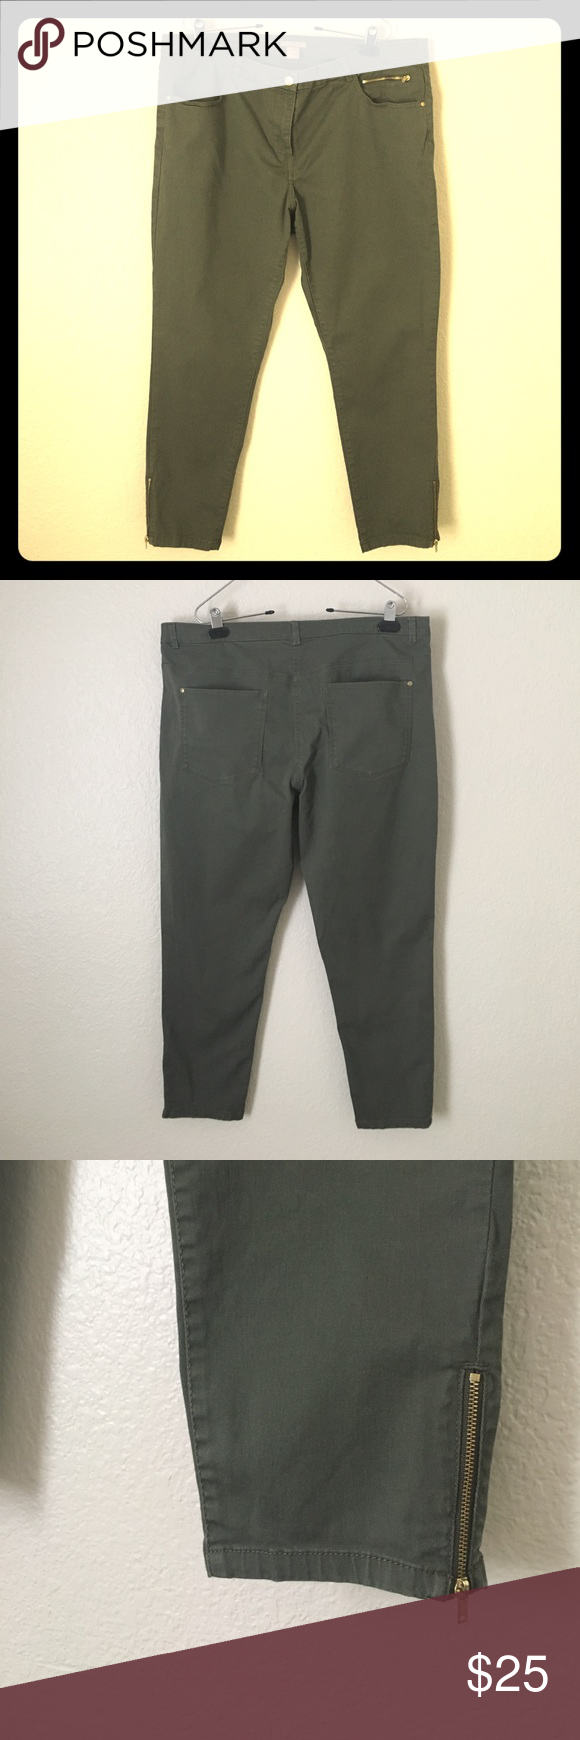 H&M + Ankle Jeans olive green Very nice dark army green ankle jeans with gold zippers. Worn only once, very good condition. H&M Jeans Ankle & Cropped